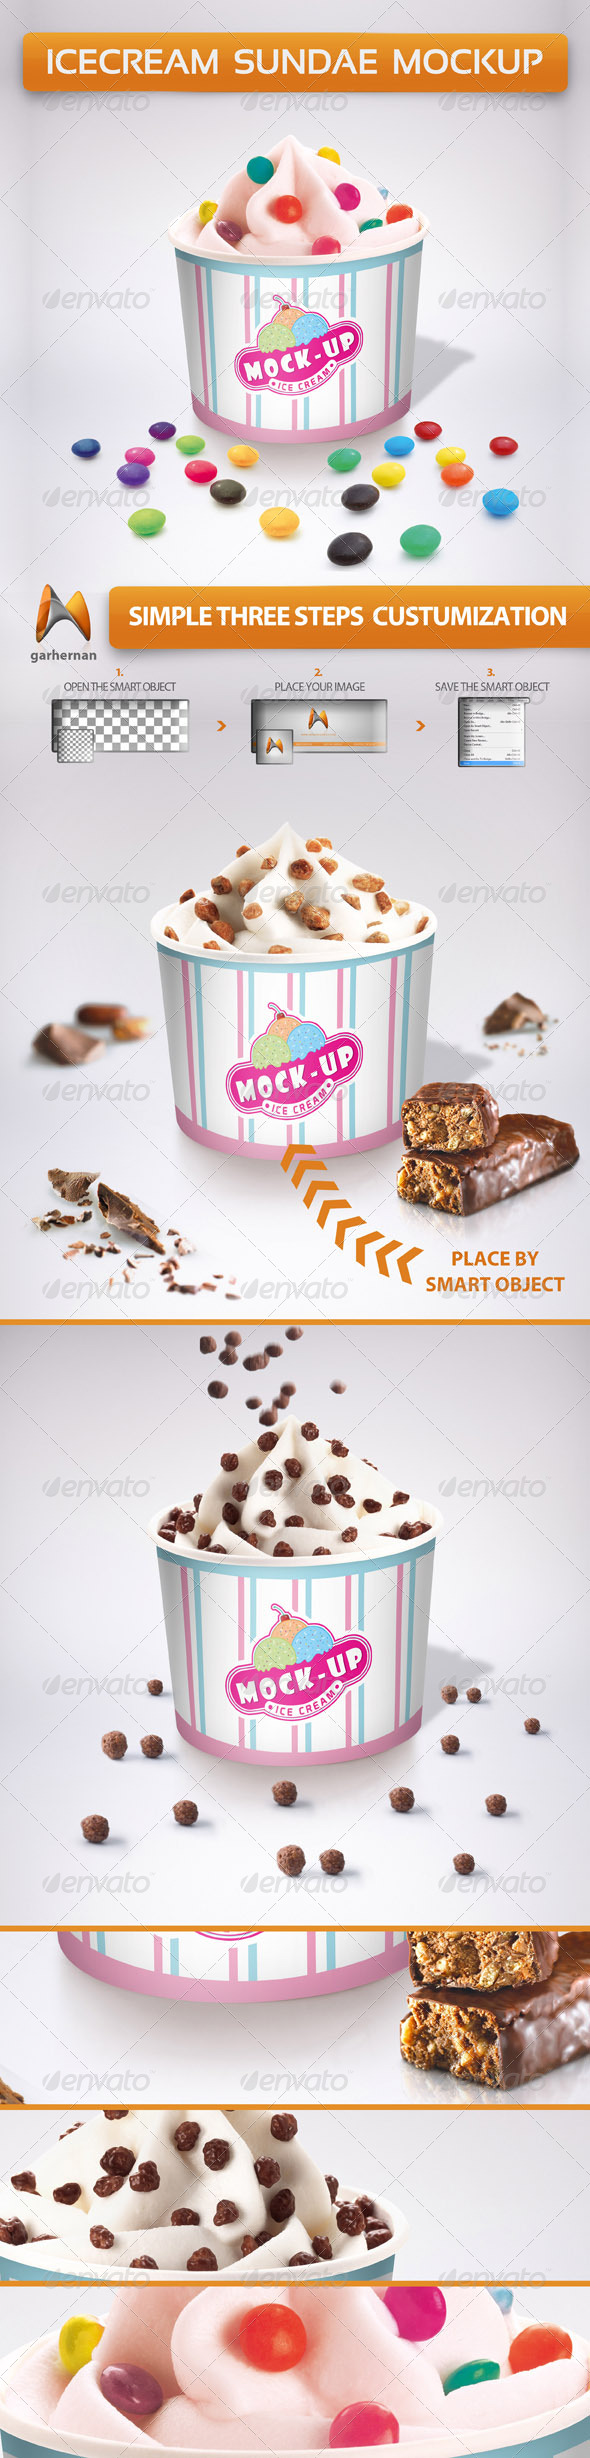 GraphicRiver Ice Cream Sundae Mockup 5371811